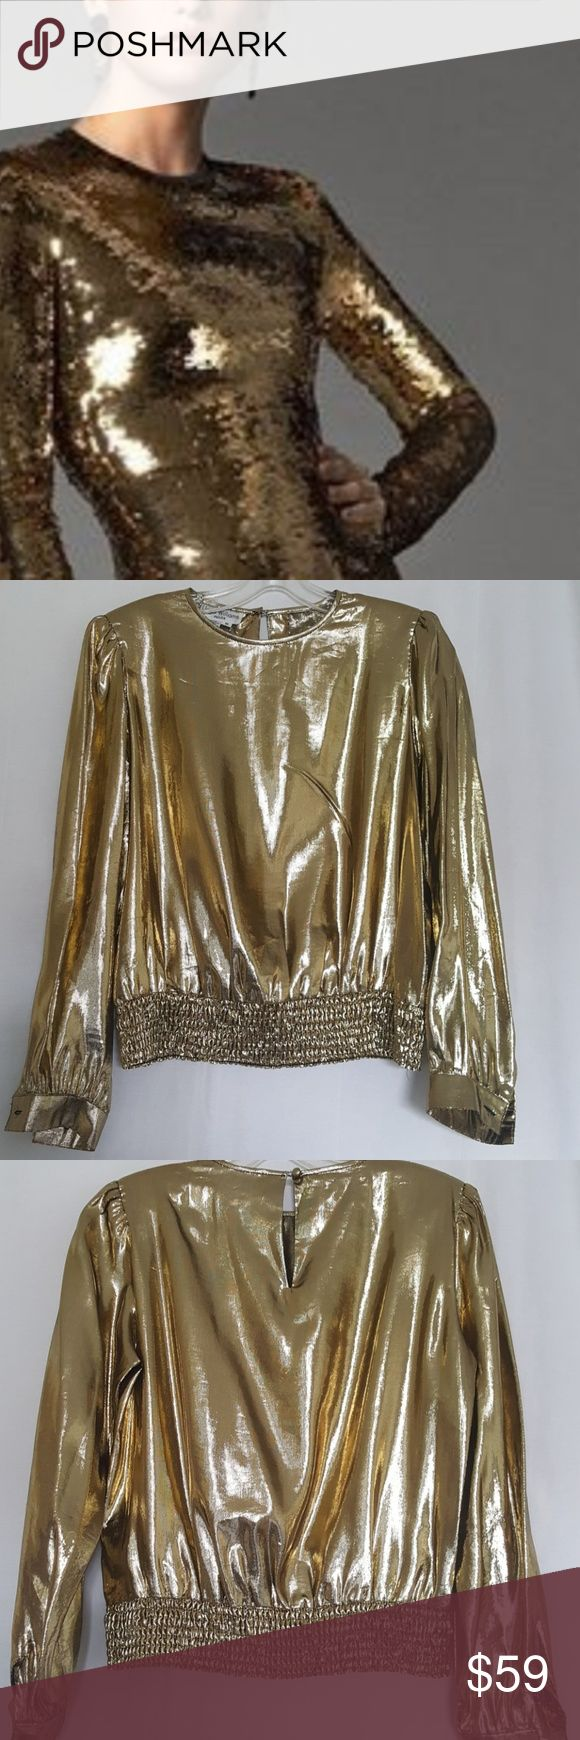 Vintage Lloyd Williams Gold Lame Metallic Blouse Vintage Lloyd Williams Gold Lame Long Sleeve Metallic Blouse,  glamorous mint condition vintage long sleeves, one button cuff blouse.  Round neckline,  with one button keyhole back closure, gathered waistband for a classic look. Easily removable shoulder pads. This blouse is liquid hold. True to size.  Mint vintage condition. (2 extra buttons) Length measures 22 inches.  Sleeve measures 23 inches in length.  Armpit to armpit measures 20…